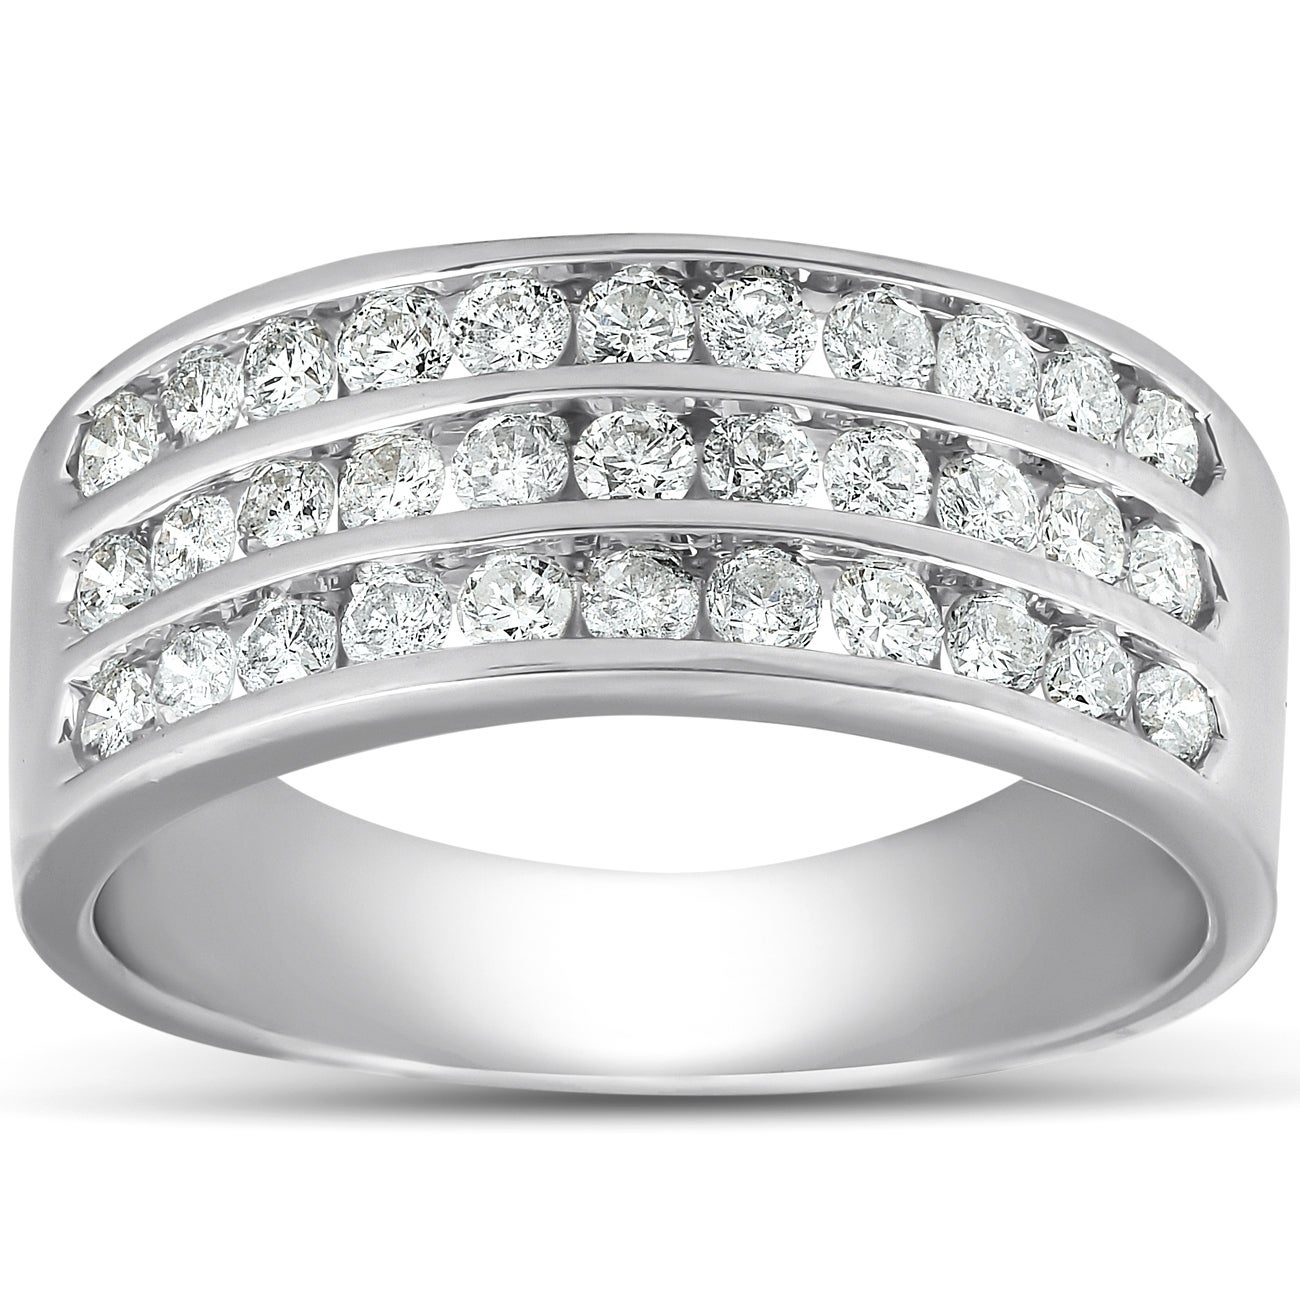 Pompeii3 10k White Gold 1 Ct Tdw Diamond Three Row Channel Set Wedding Ring Womens Anniversary Band With Regard To Most Recent Diamond Three Row Anniversary Bands In White Gold (View 6 of 25)